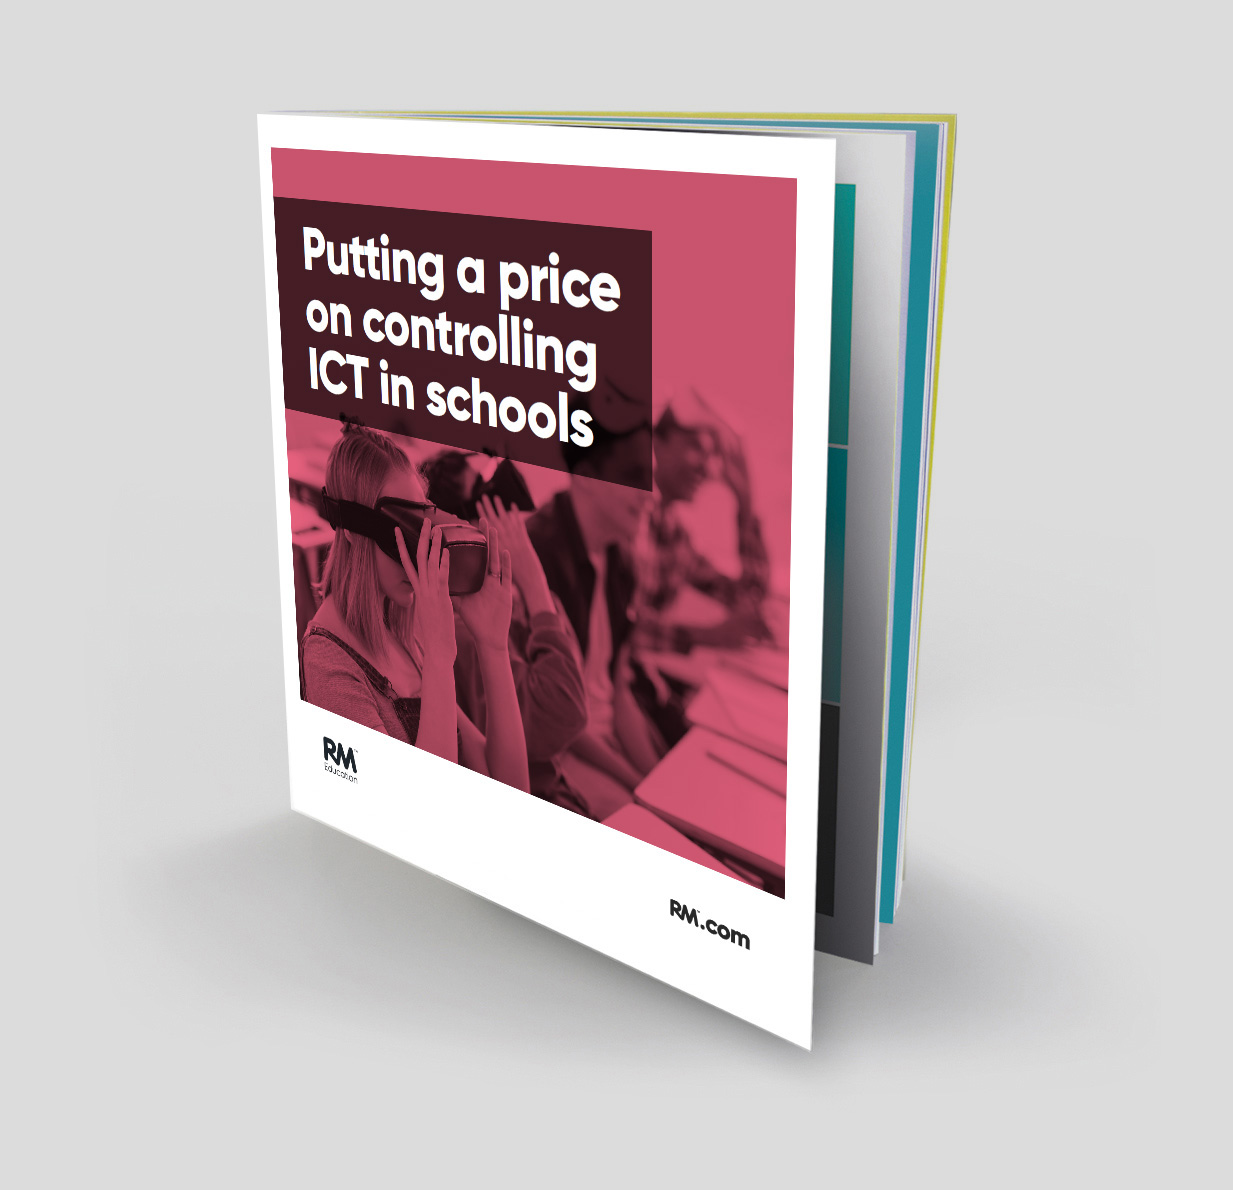 Putting a price on controlling ICT in schools